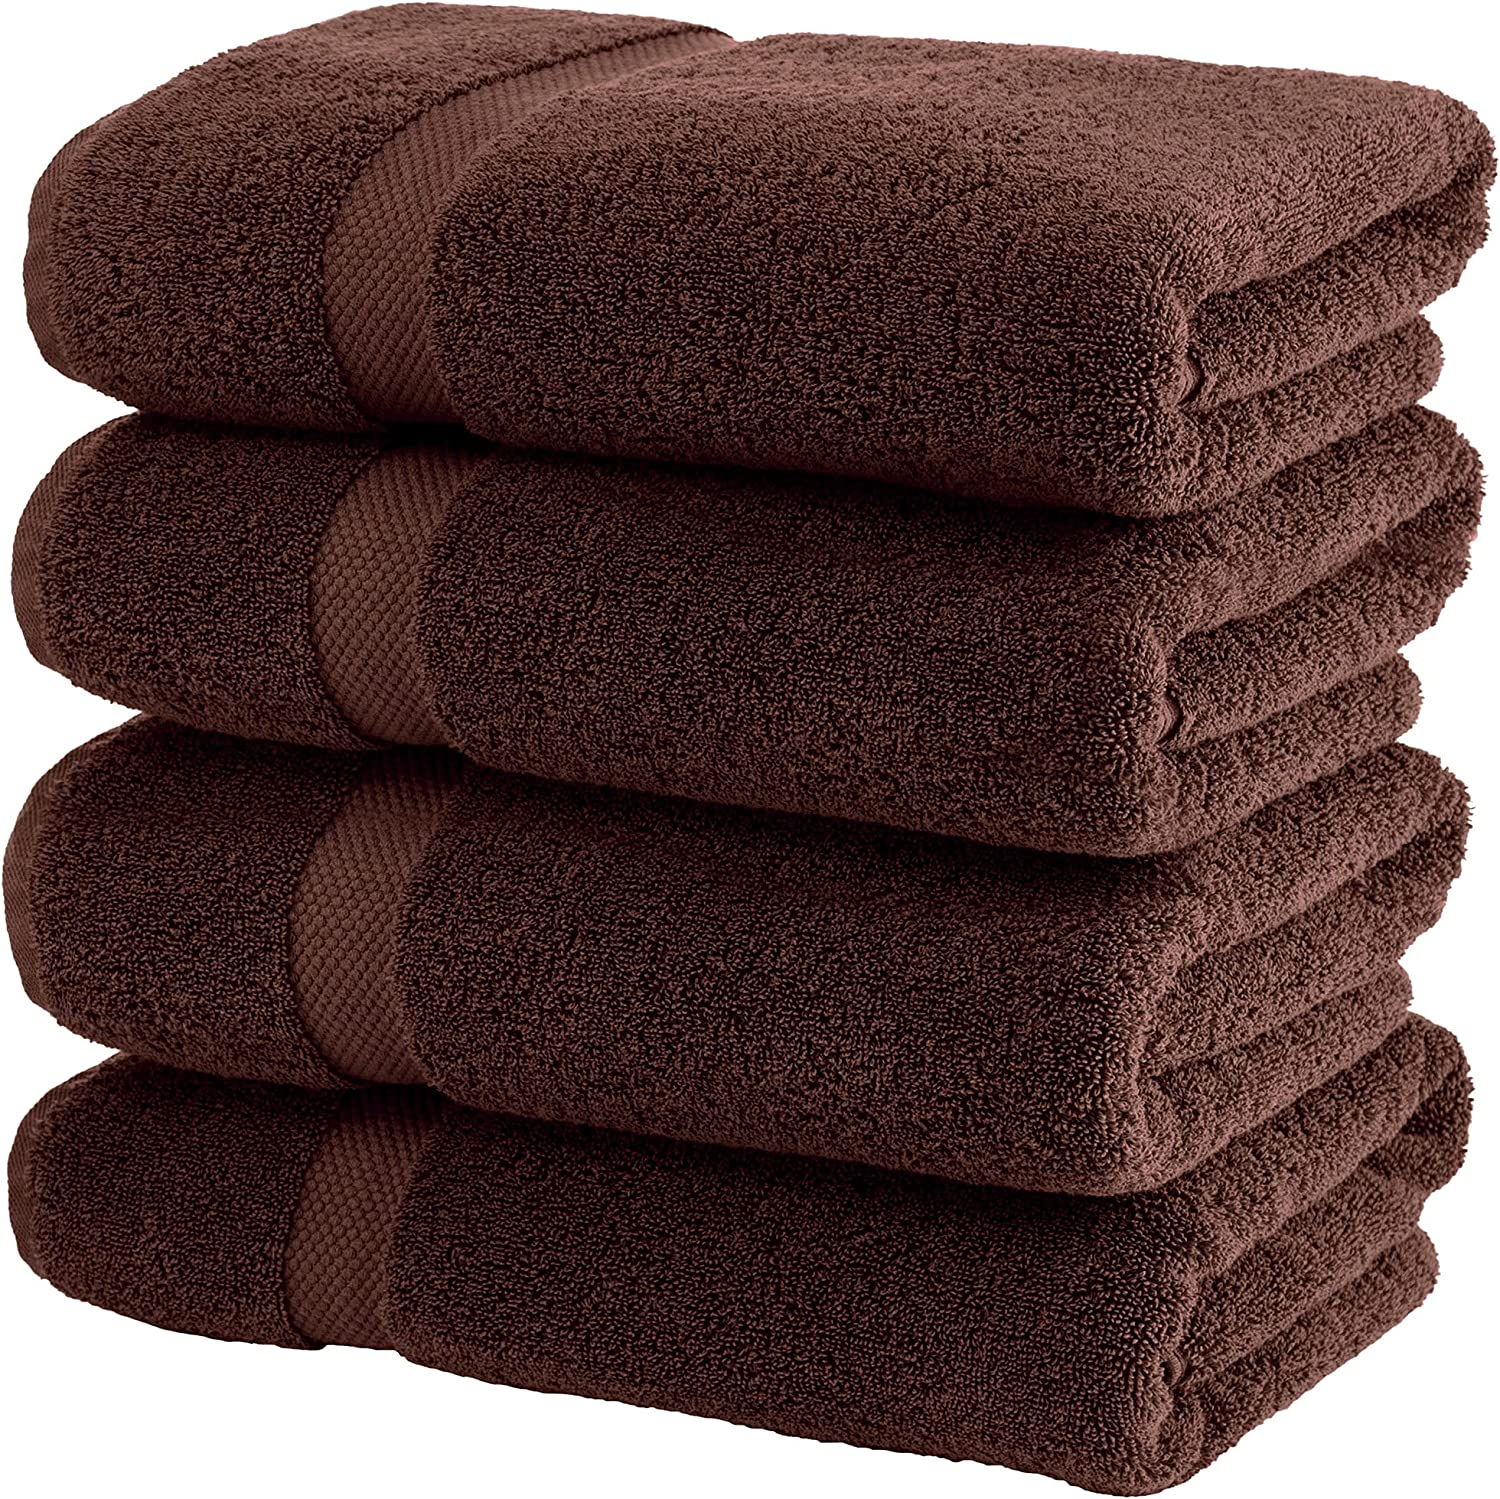 White Classic Luxury Bath Towels Large - Cotton Hotel spa Bathroom Towel   27x54   4 Pack   Brown